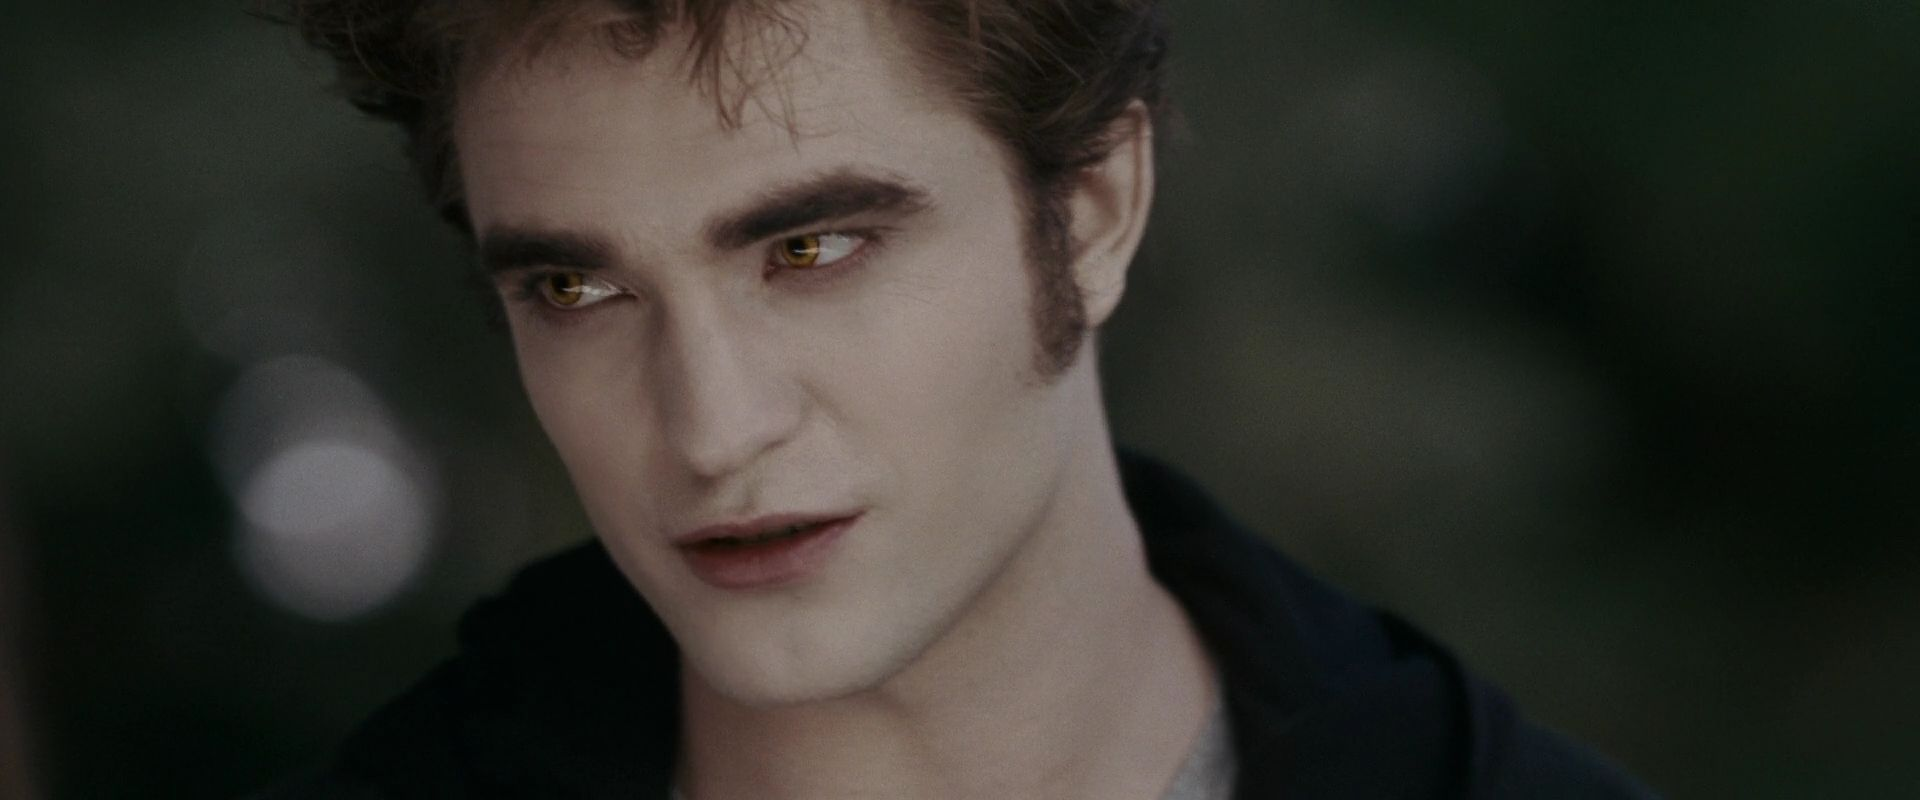 Edward Cullen - Edward Cullen Photo (18085293) - Fanpop